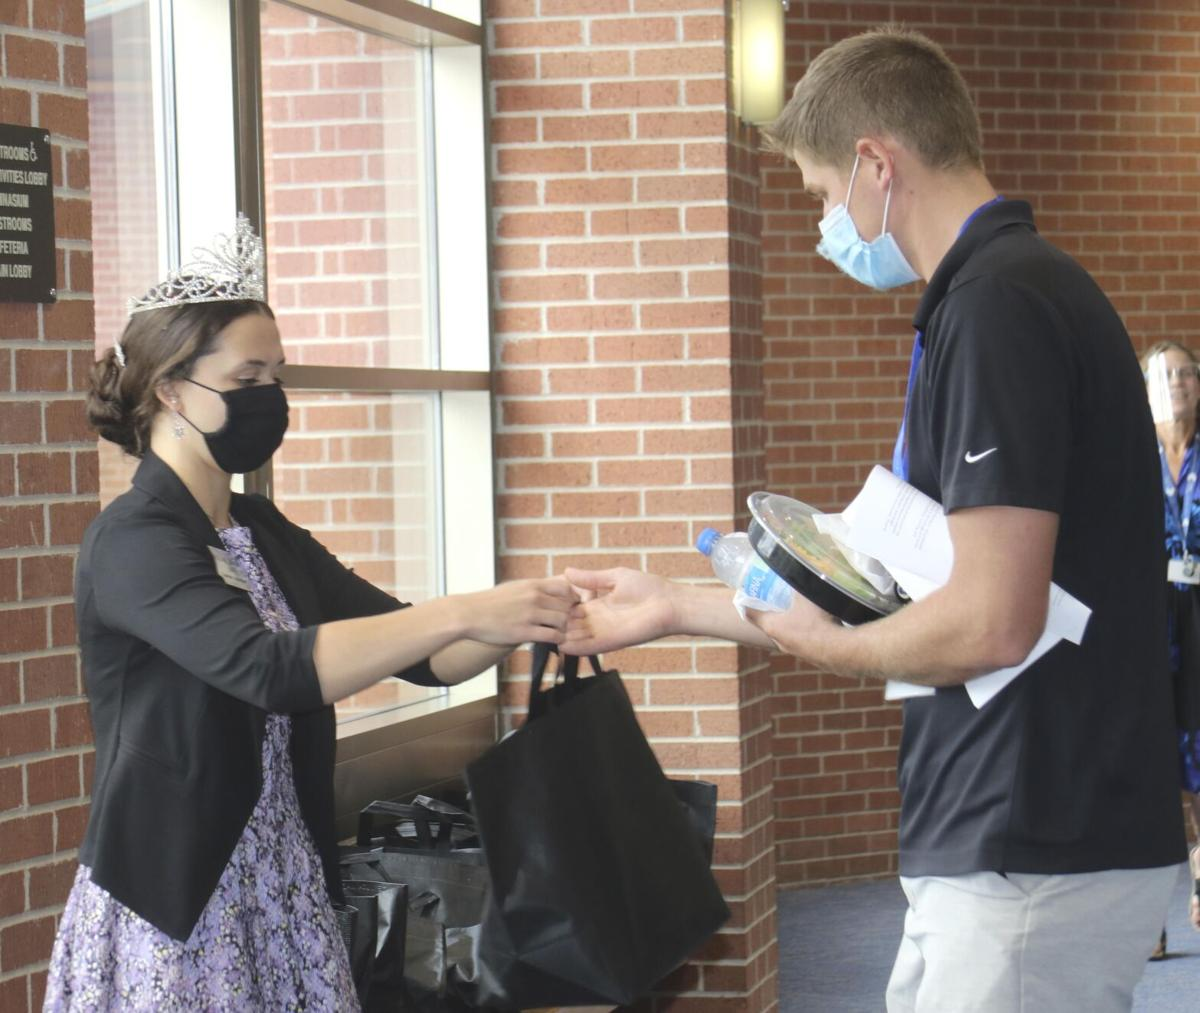 New teachers welcomed at annual luncheon